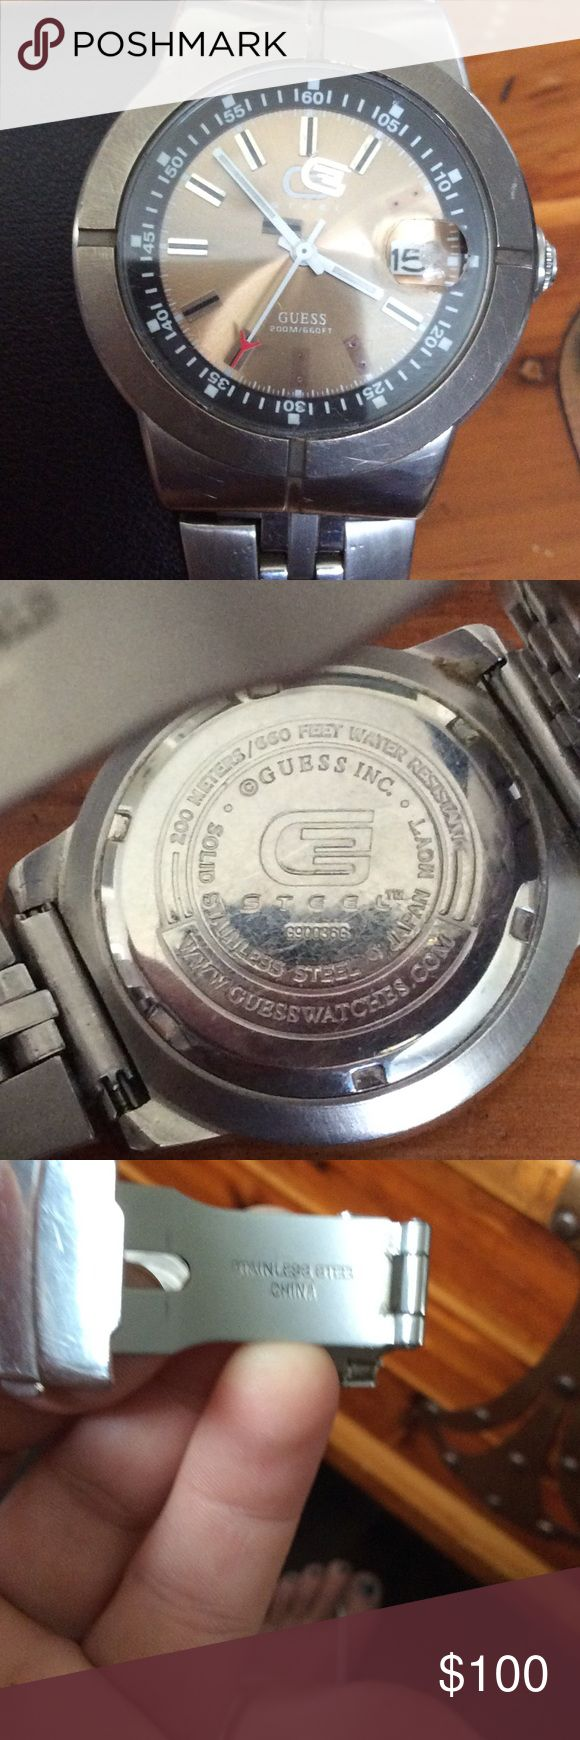 GUESS Watch for men This is a GREAT Guess watch Japan Mout. Solid stainless steel. Zoom 200m, 660 ft water resistant and Suitable for all high impact water sports and scuba diving at depths not requiring helium or compression. Needs battery. A GREAT BUY. Guess Accessories Watches